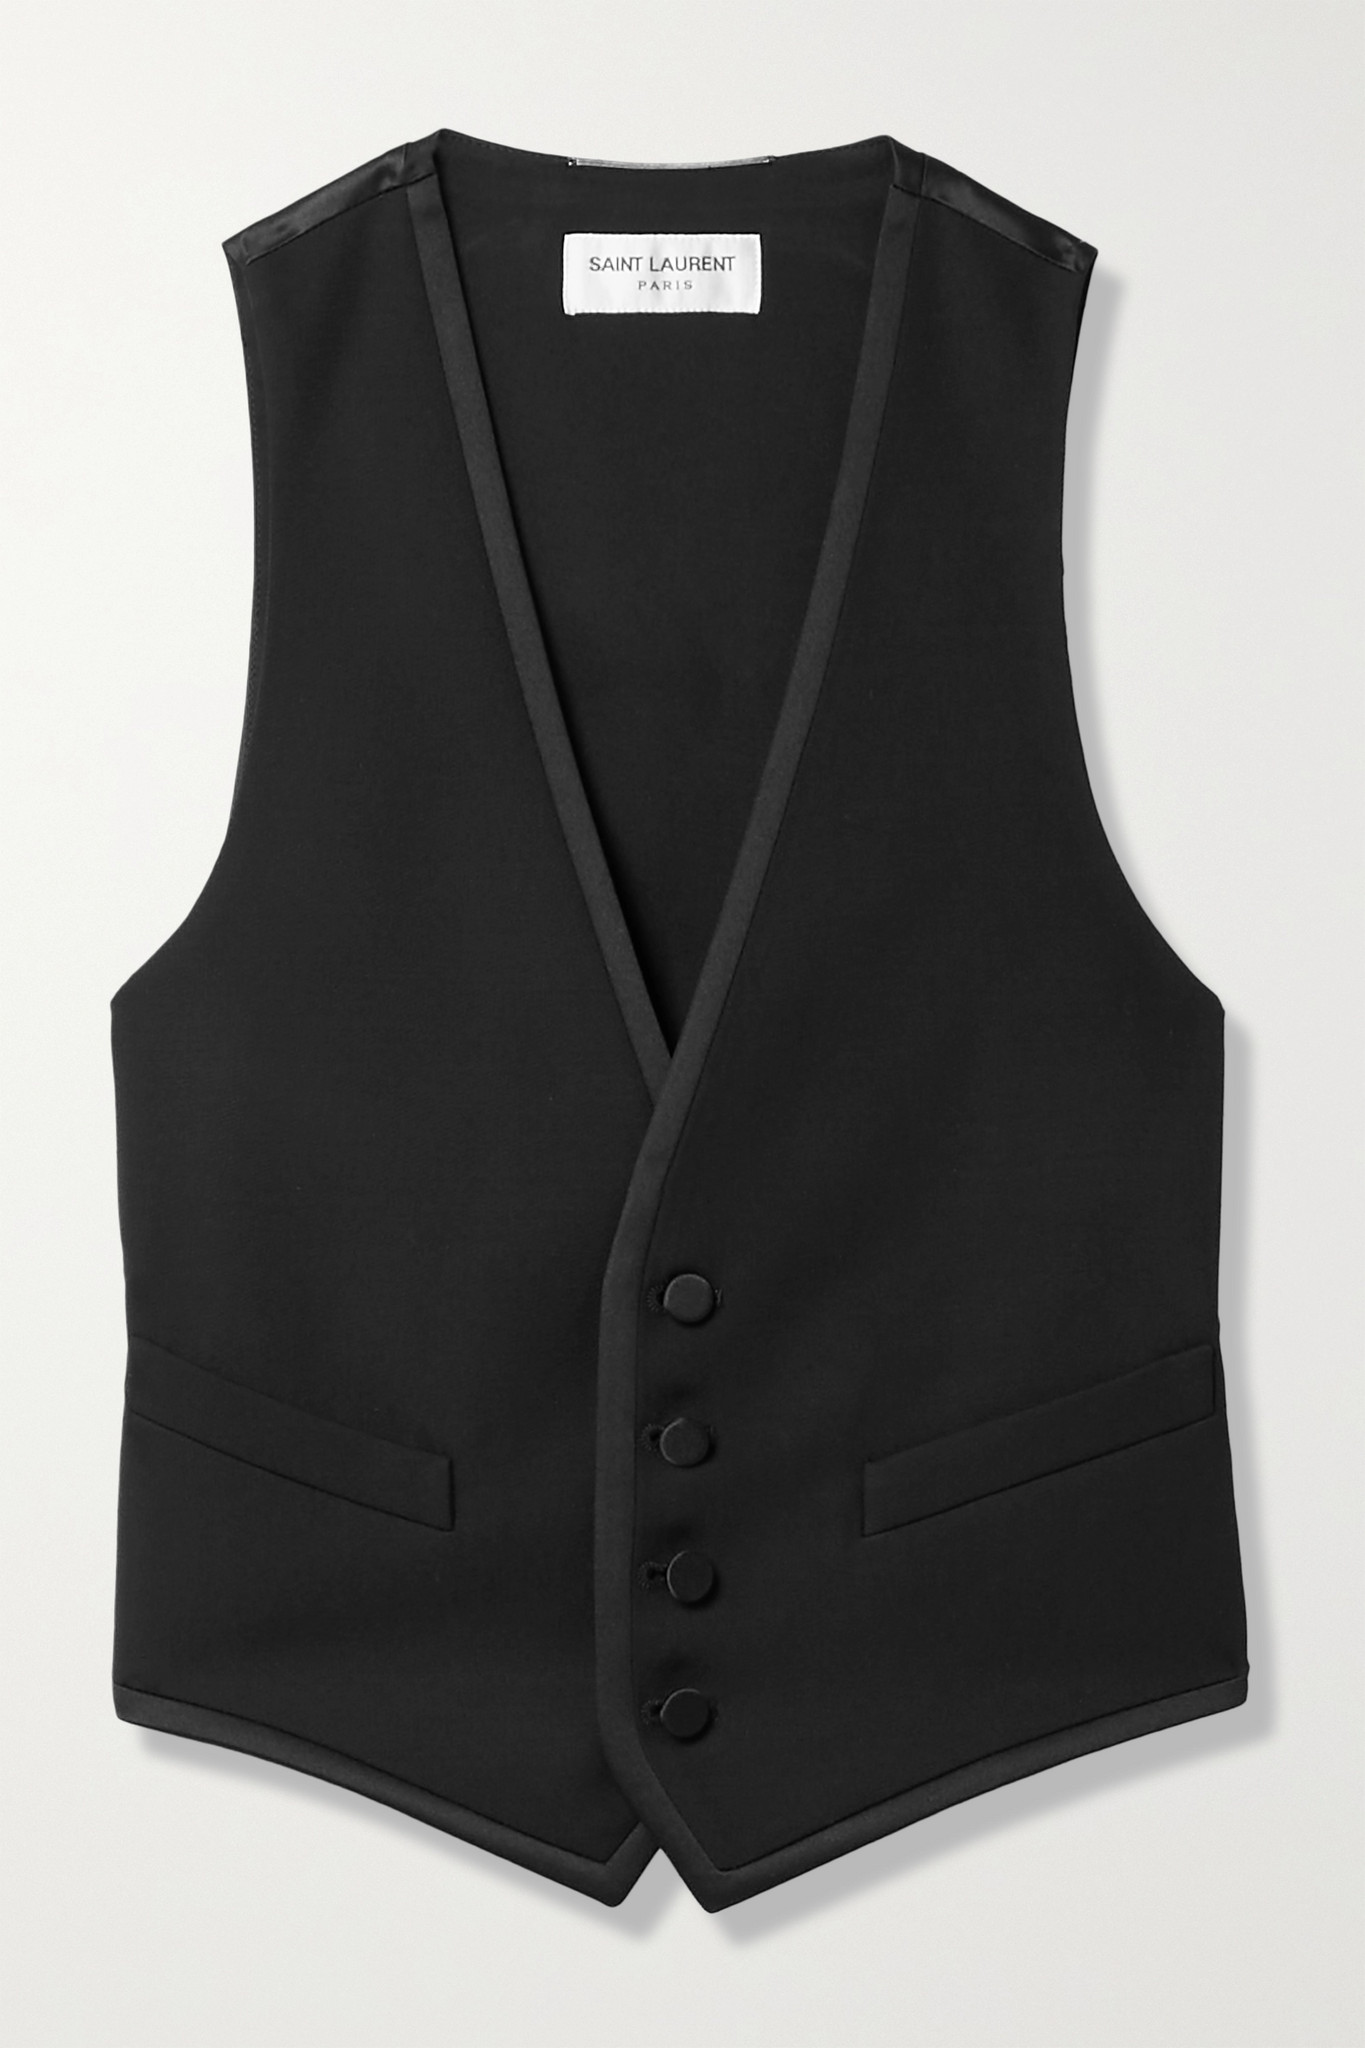 SAINT LAURENT - Cropped Grain De Poudre Wool And Silk-satin Vest - Black - FR34